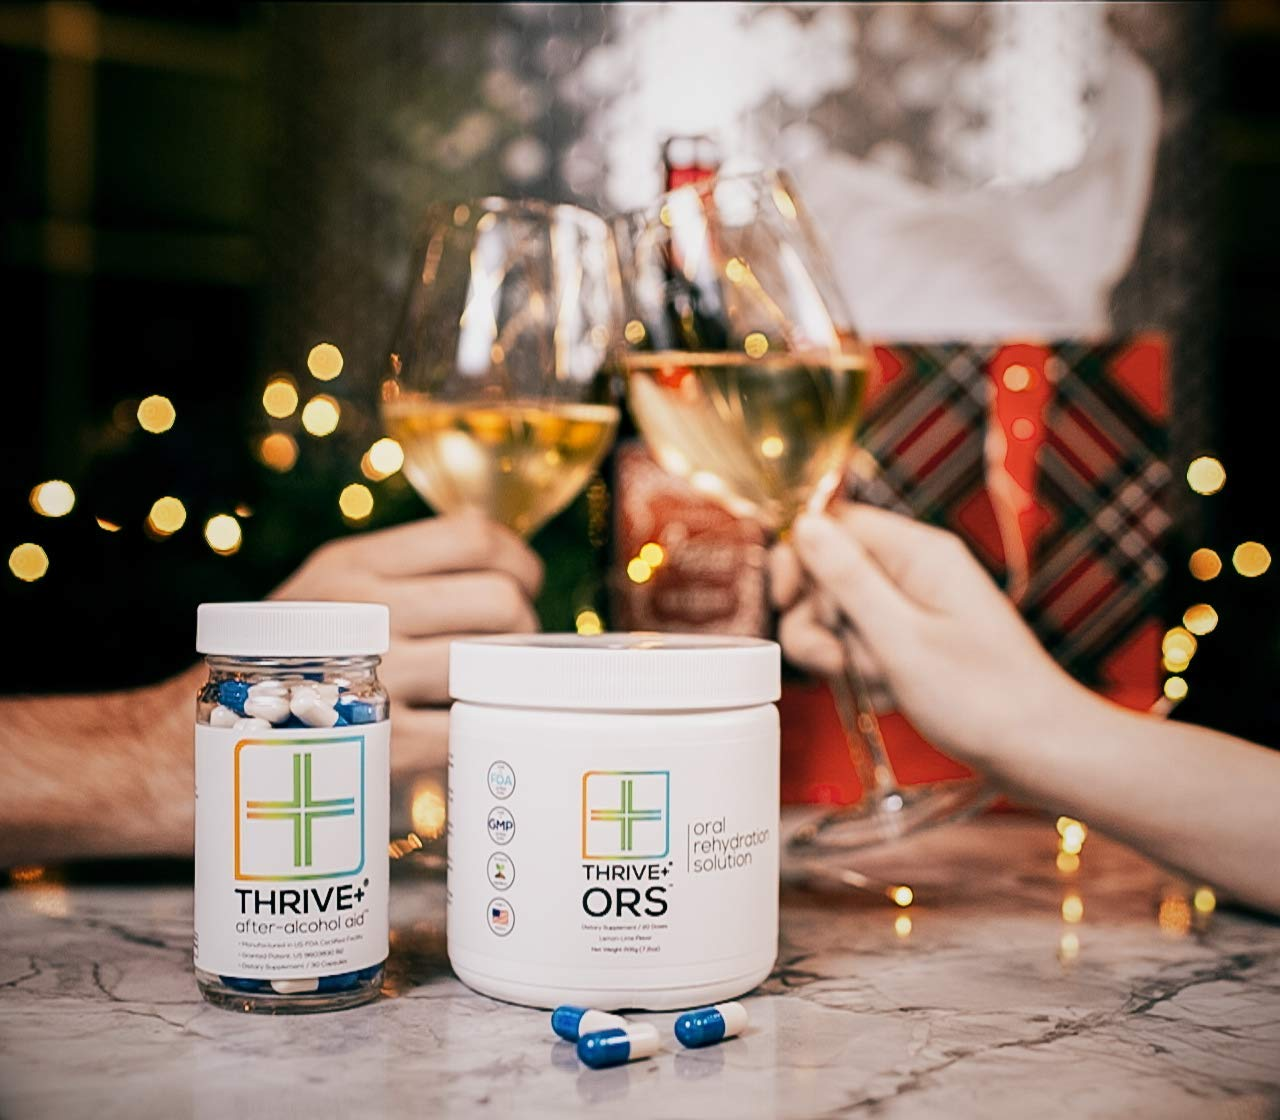 Thrive+ After Alcohol Aid & Ors Combo | for Fast Alcohol Detox & Rehydration Recovery After Drinking Alcohol. Replenish with Our Electrolyte Formula …